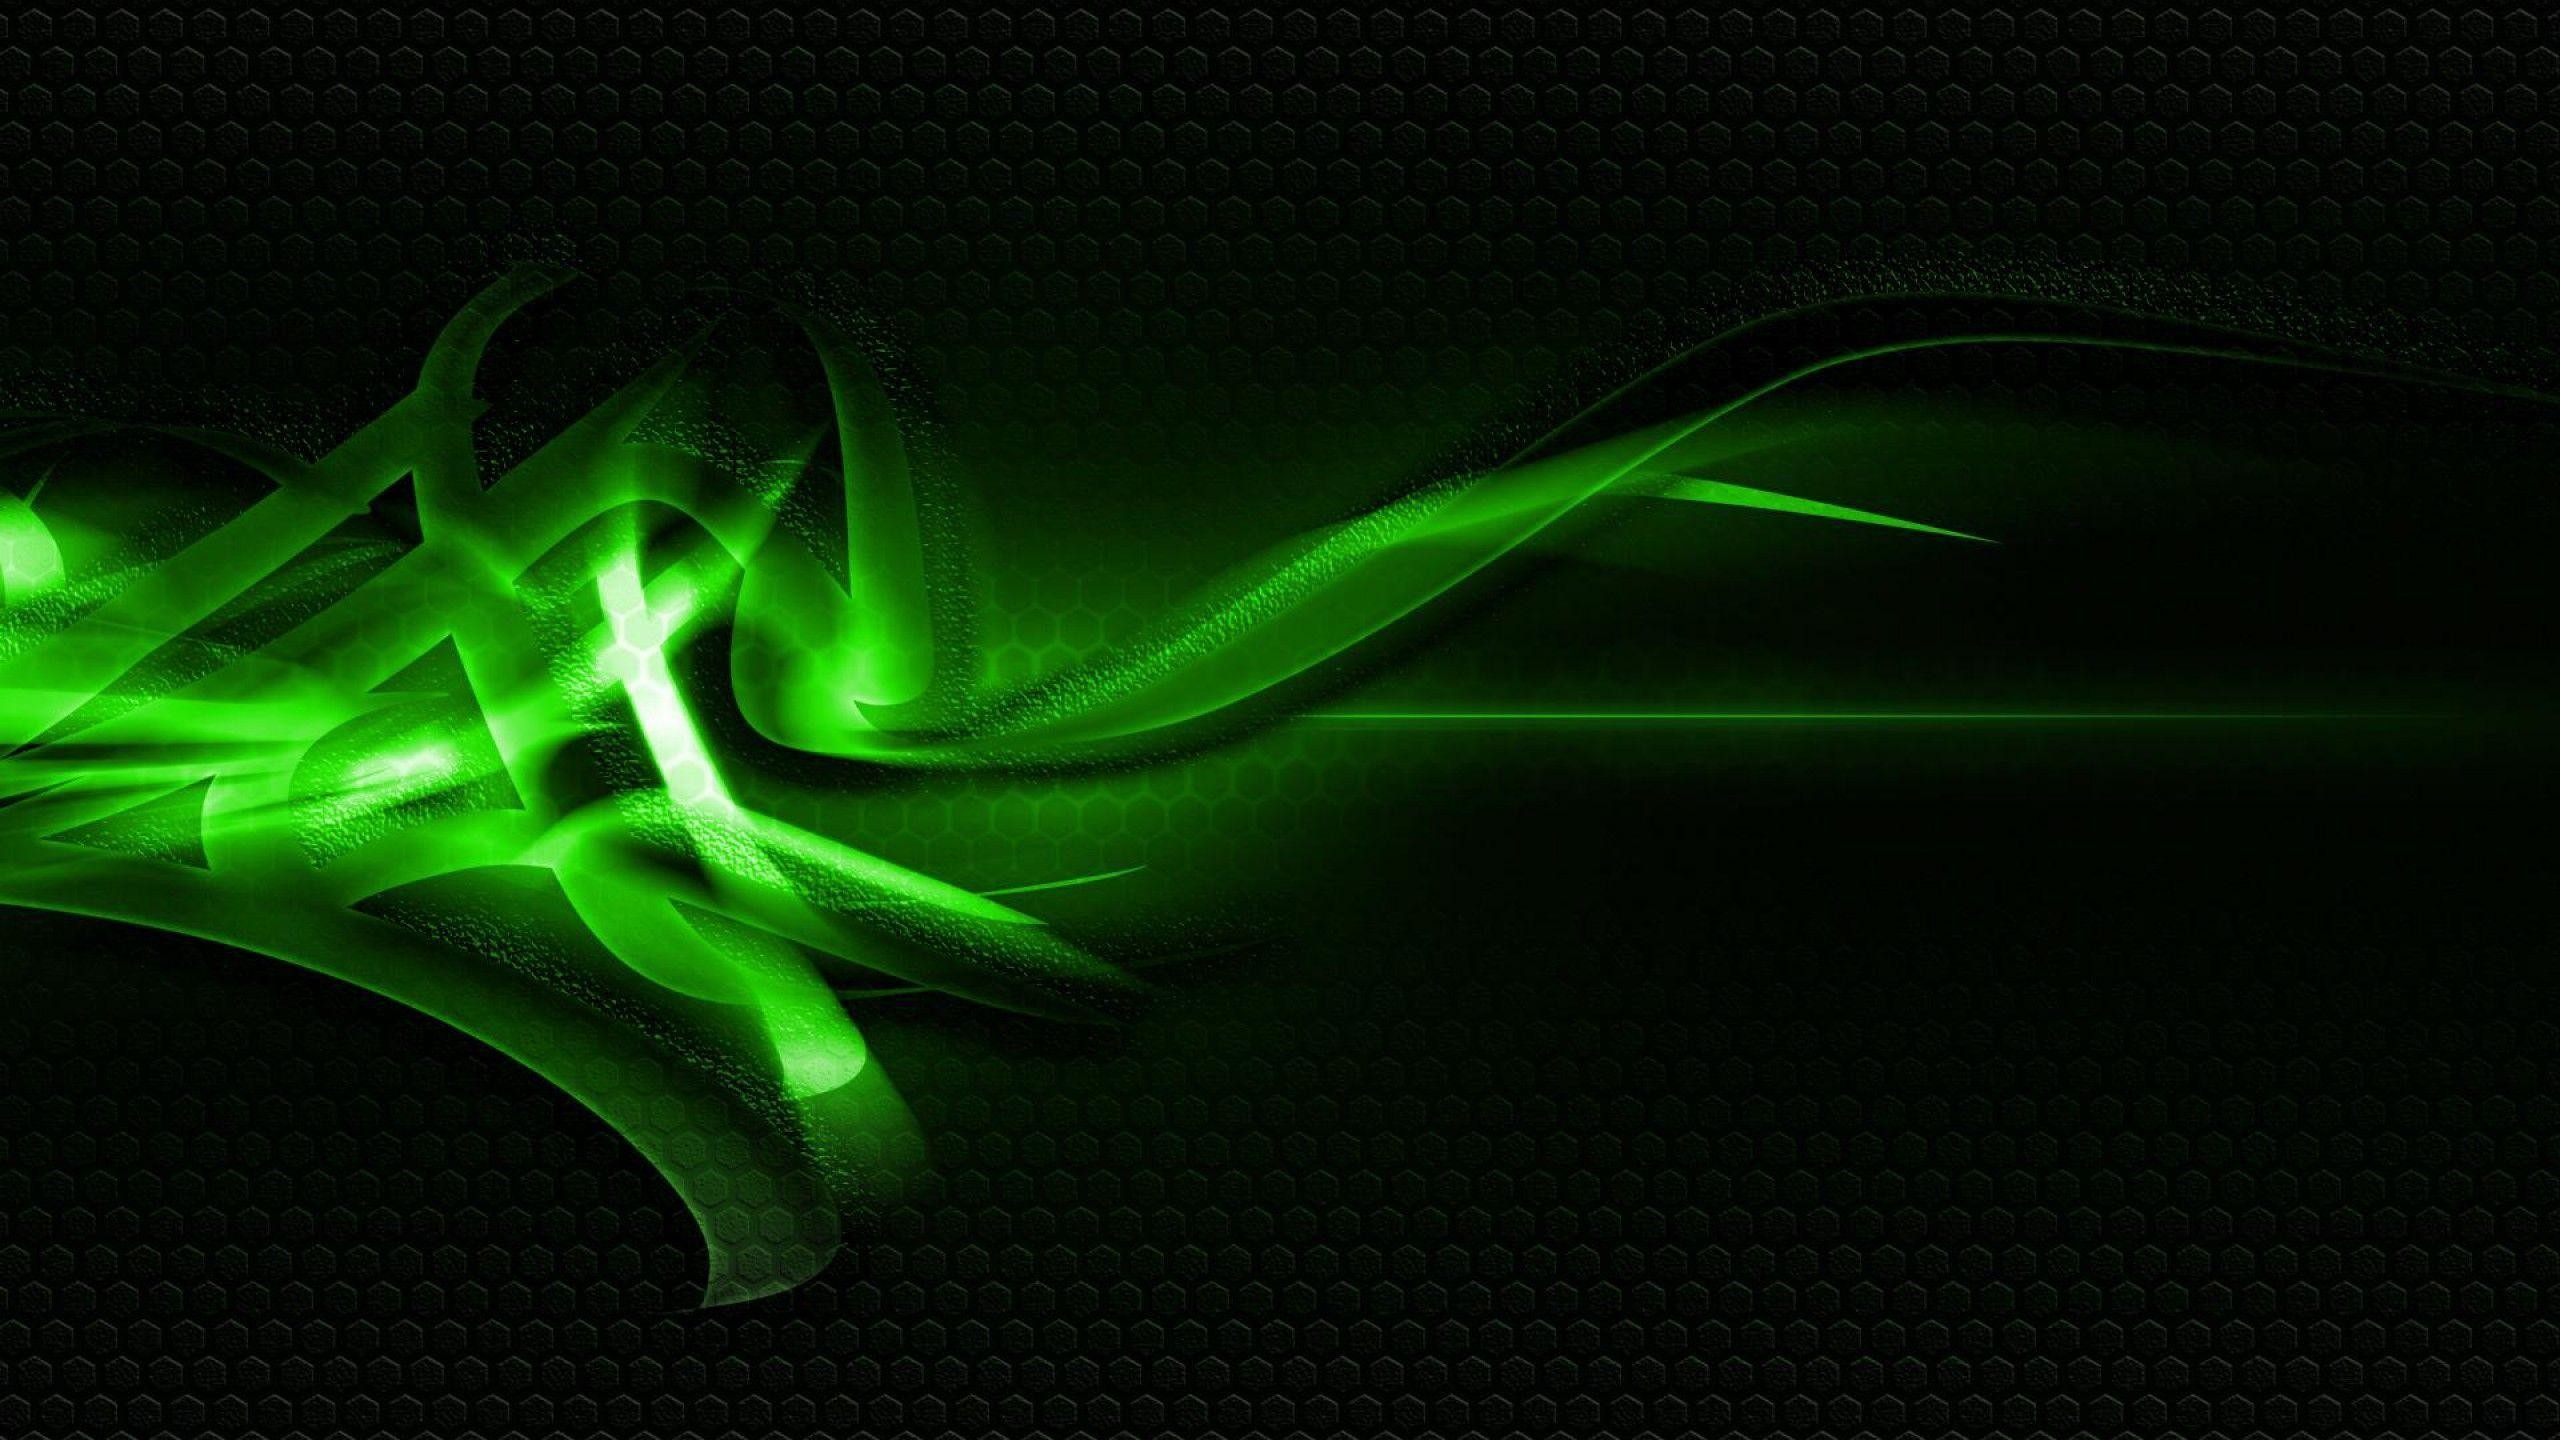 2560x1440 Black And Green Abstract Wallpapers #11818 | Hdwidescreens.